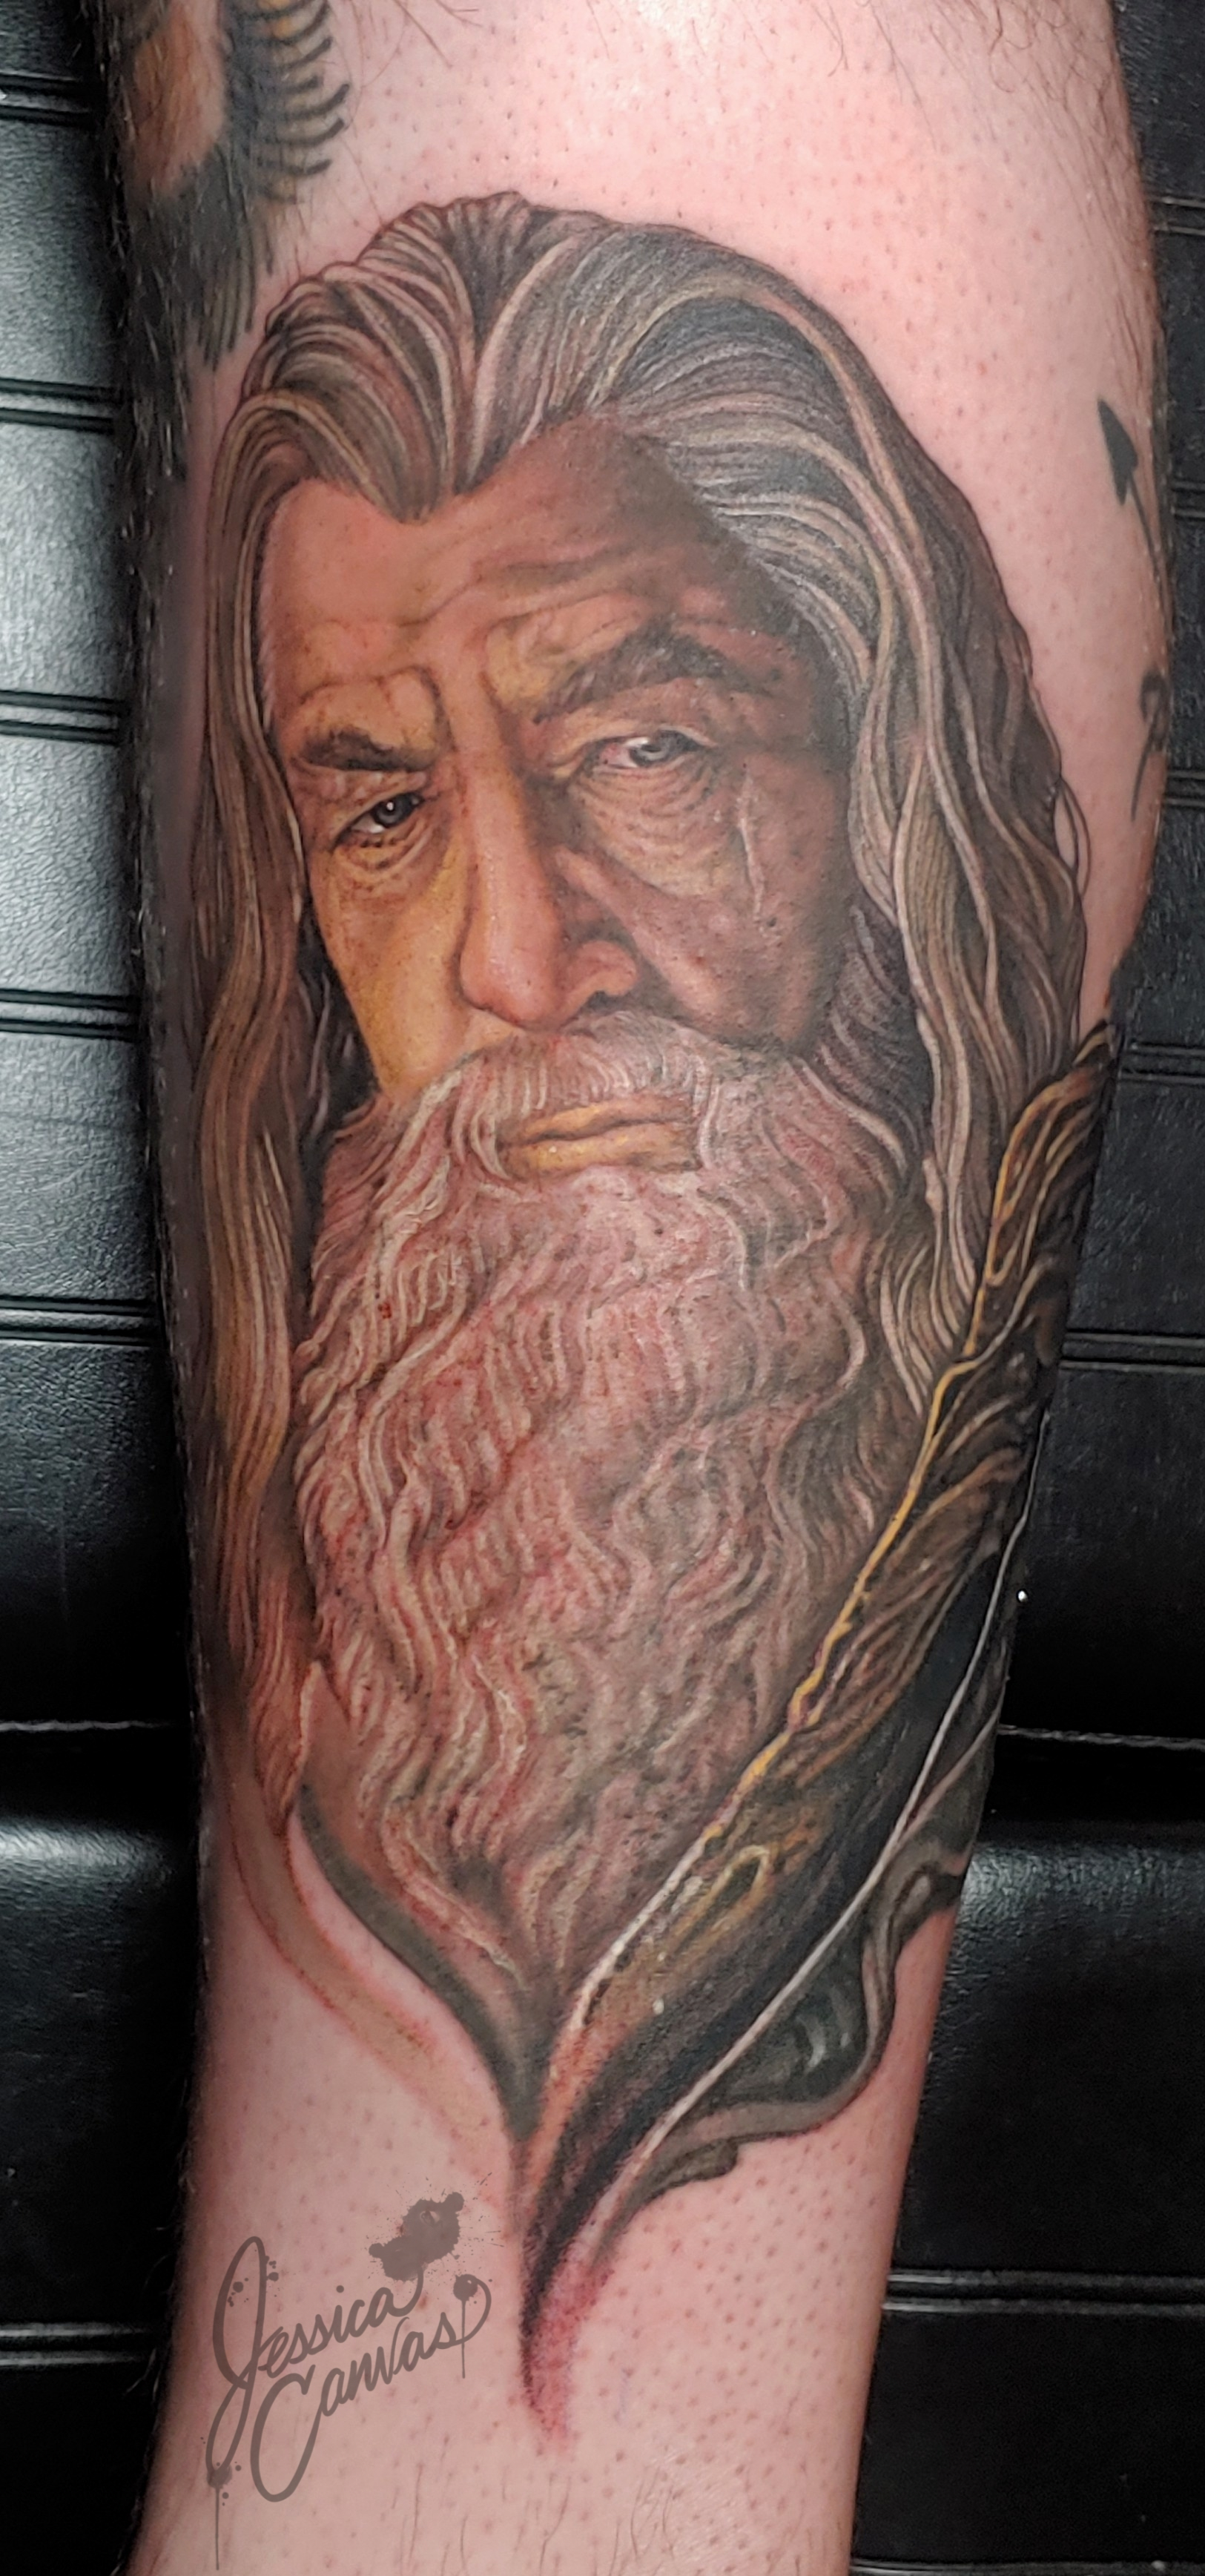 Gandalf Lord of the Rings Portrait